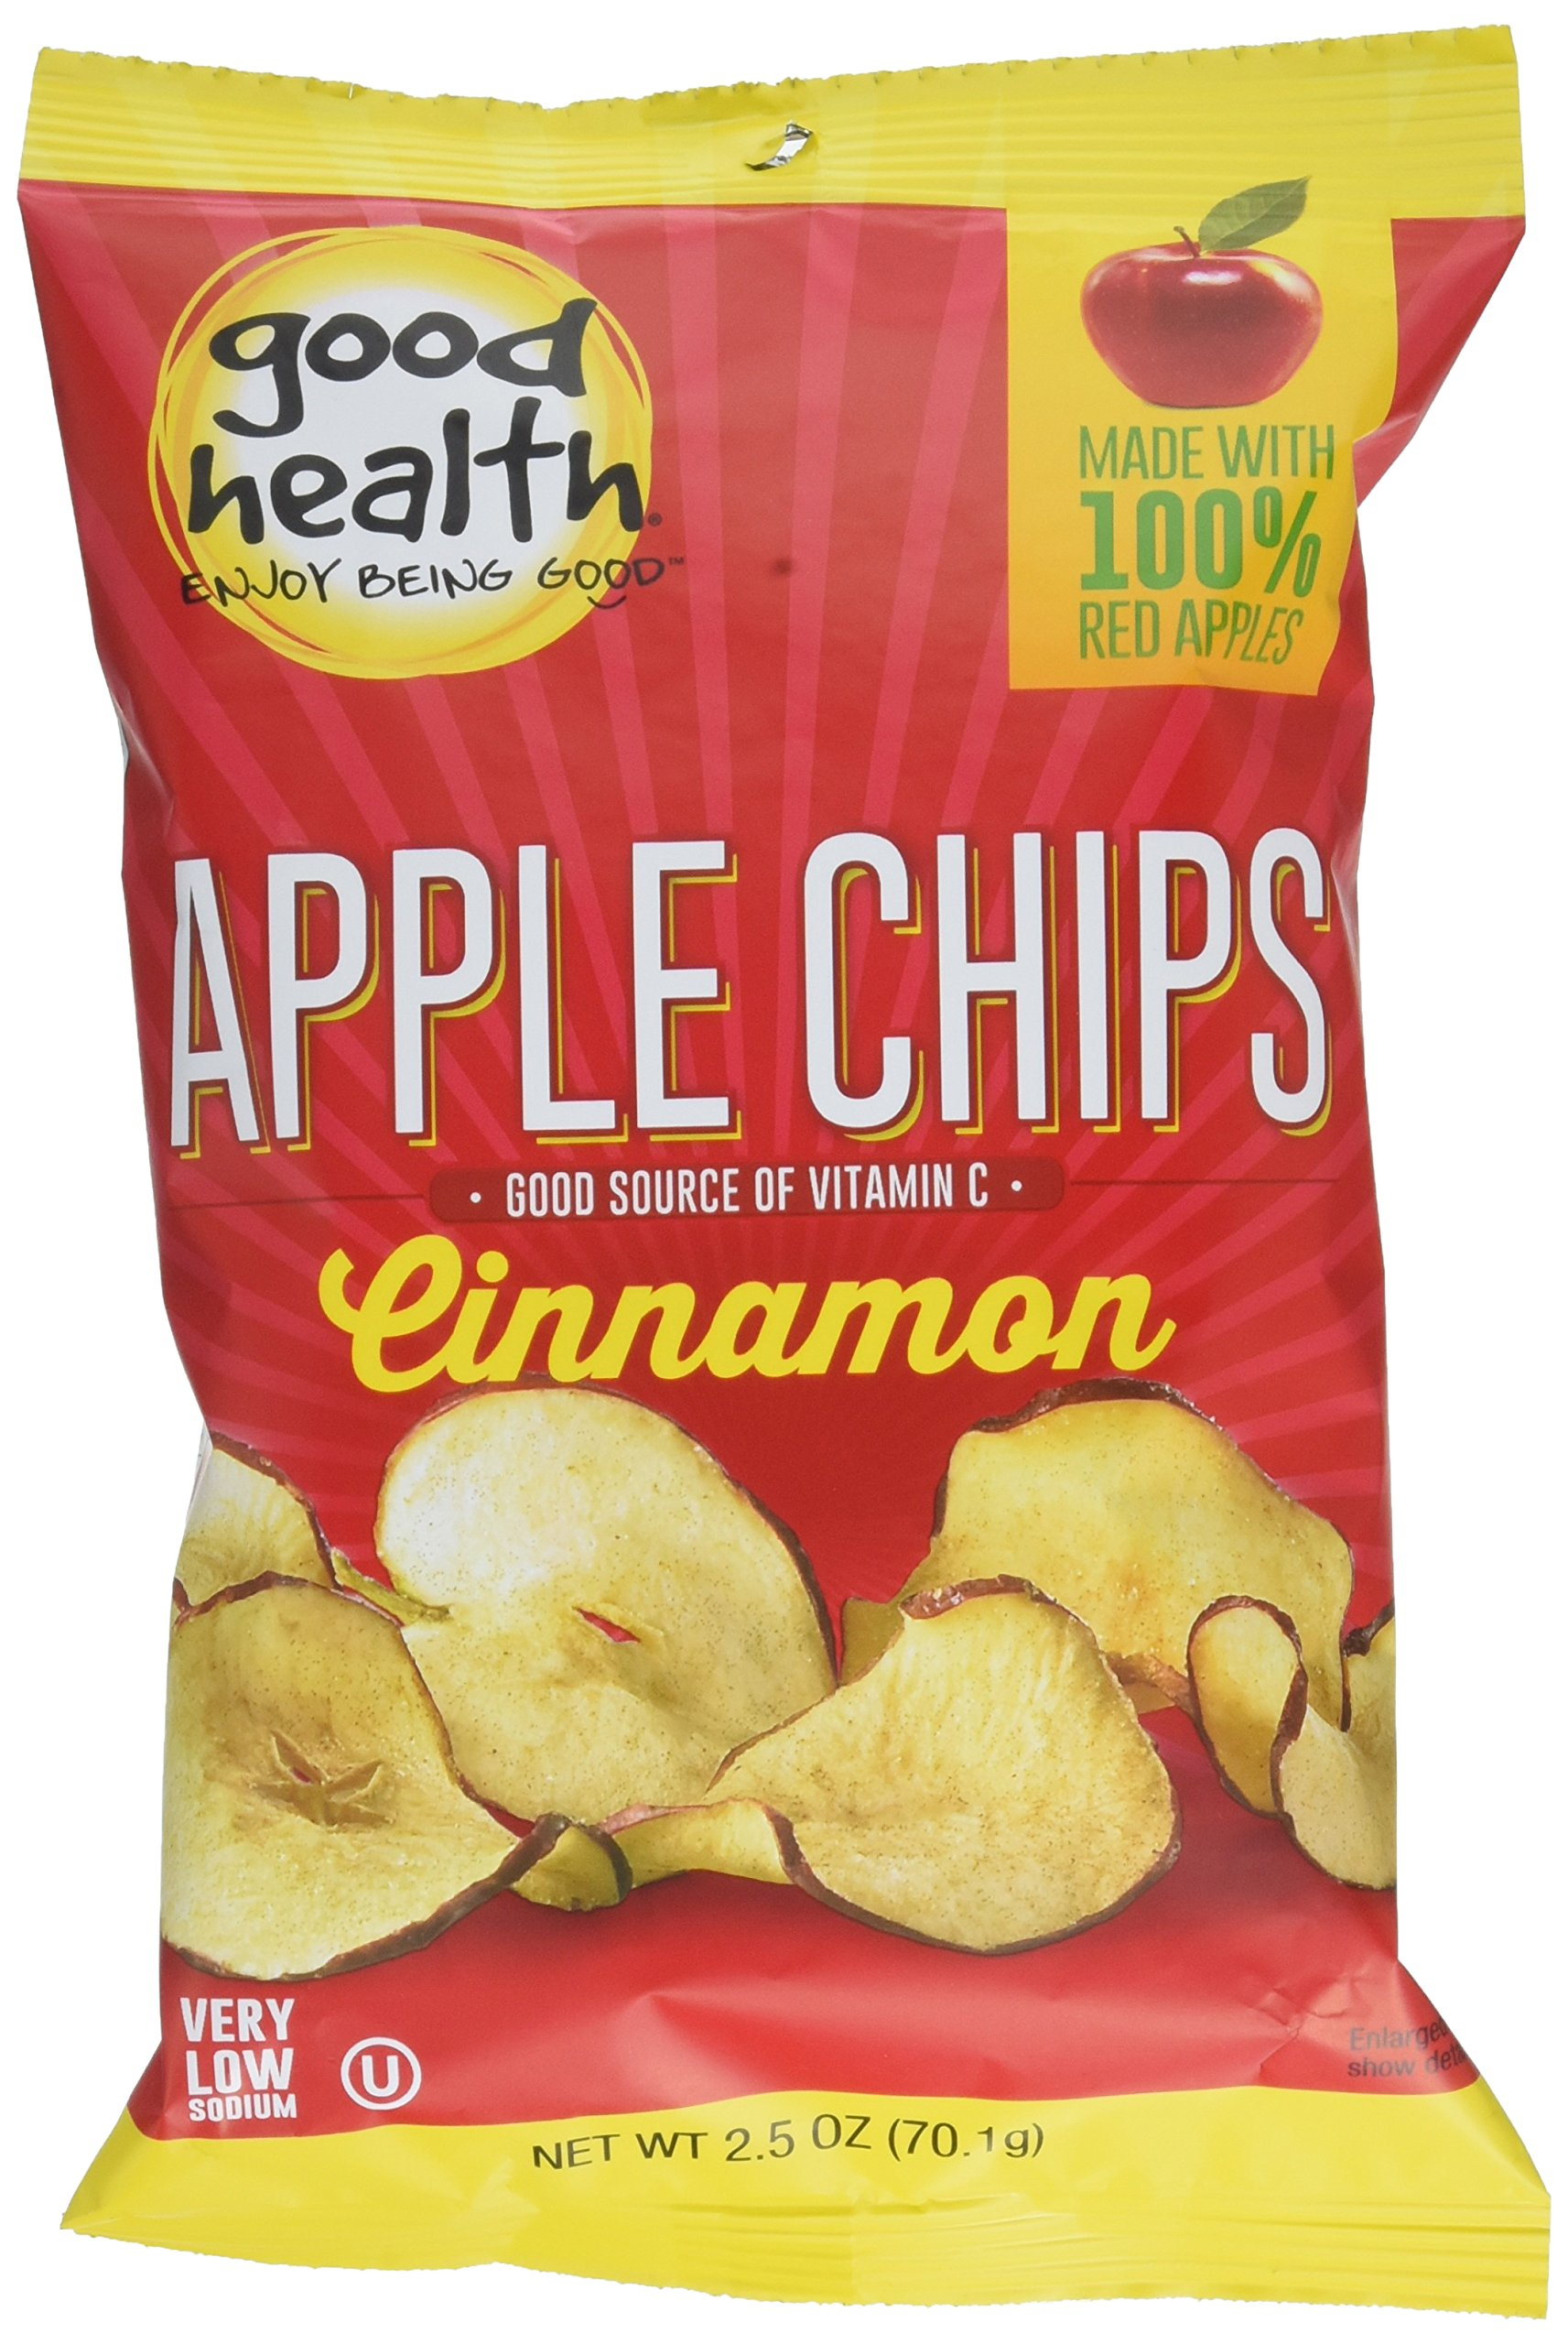 Good Health Apple Chips, Cinnamon, 2.5 oz. Bag, 12 Pack -Crispy Apple Chips Made with 100% Red Apples, Great for Lunches or Snacking on the Go by Good Health